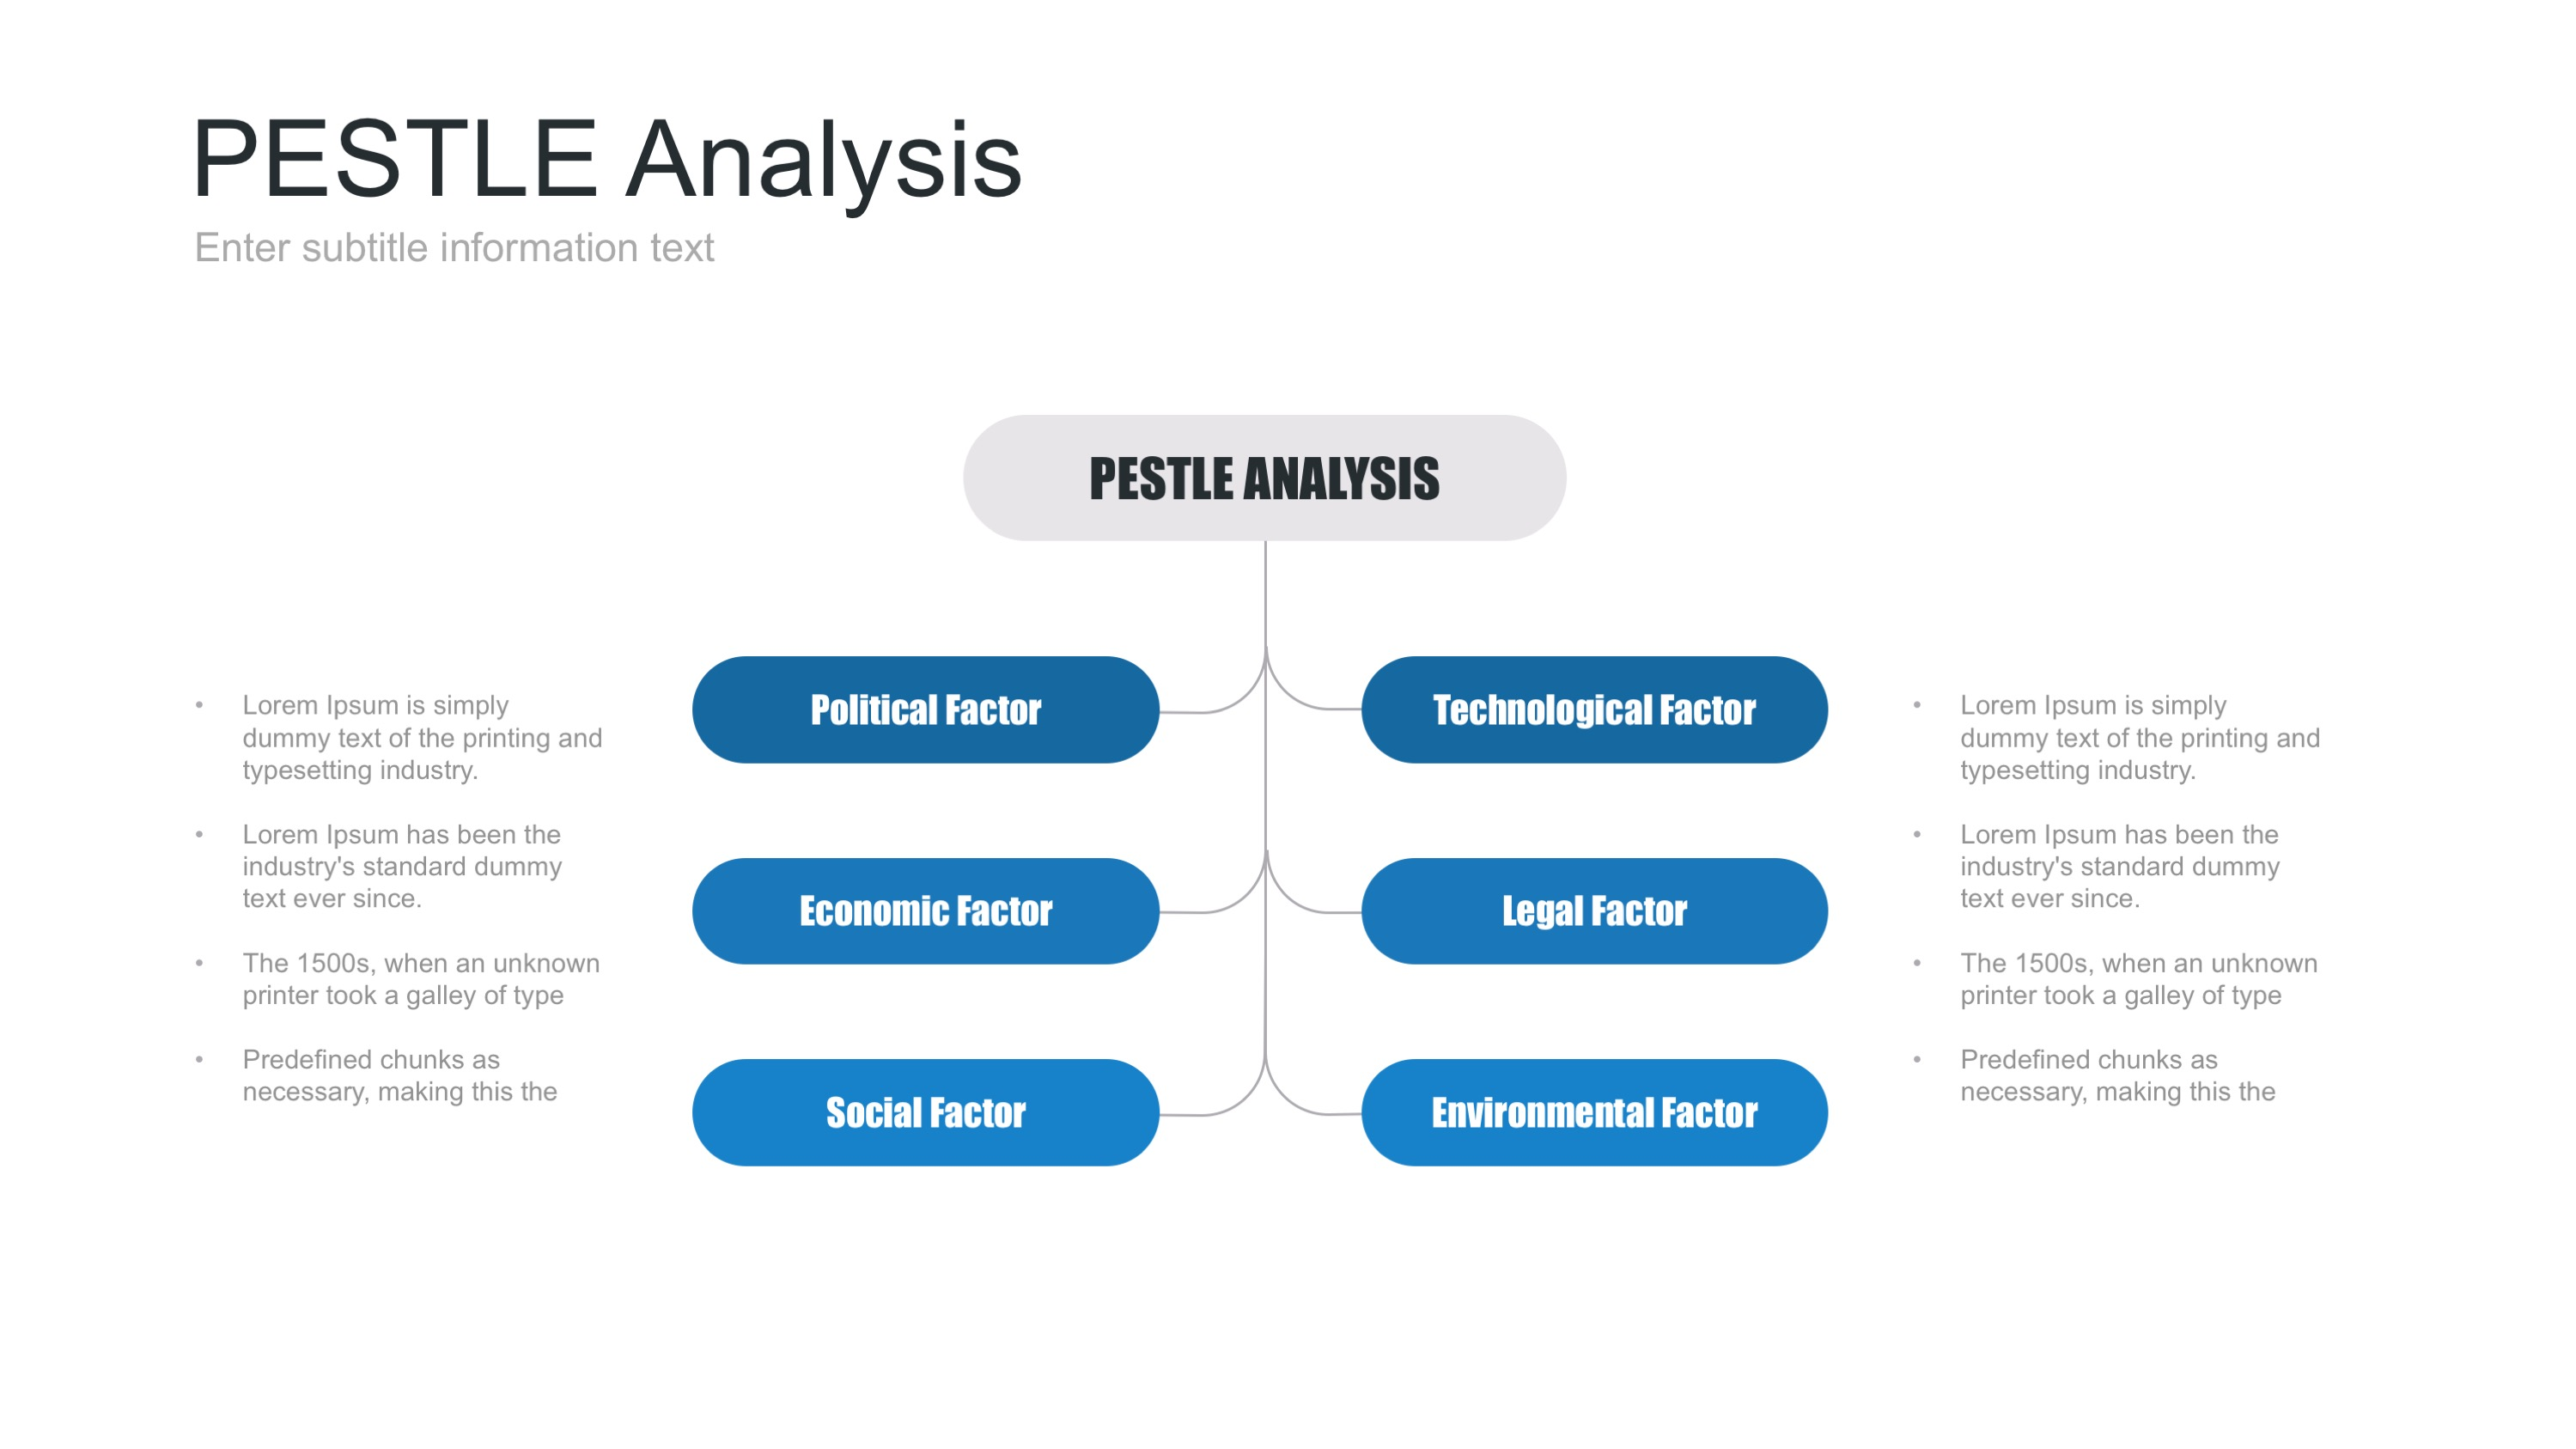 pest analysis for food beverage industry in uk Economical the economic environment is crucial to any industry in pestle analysis of the soft drinks sector (econimical on food and non.